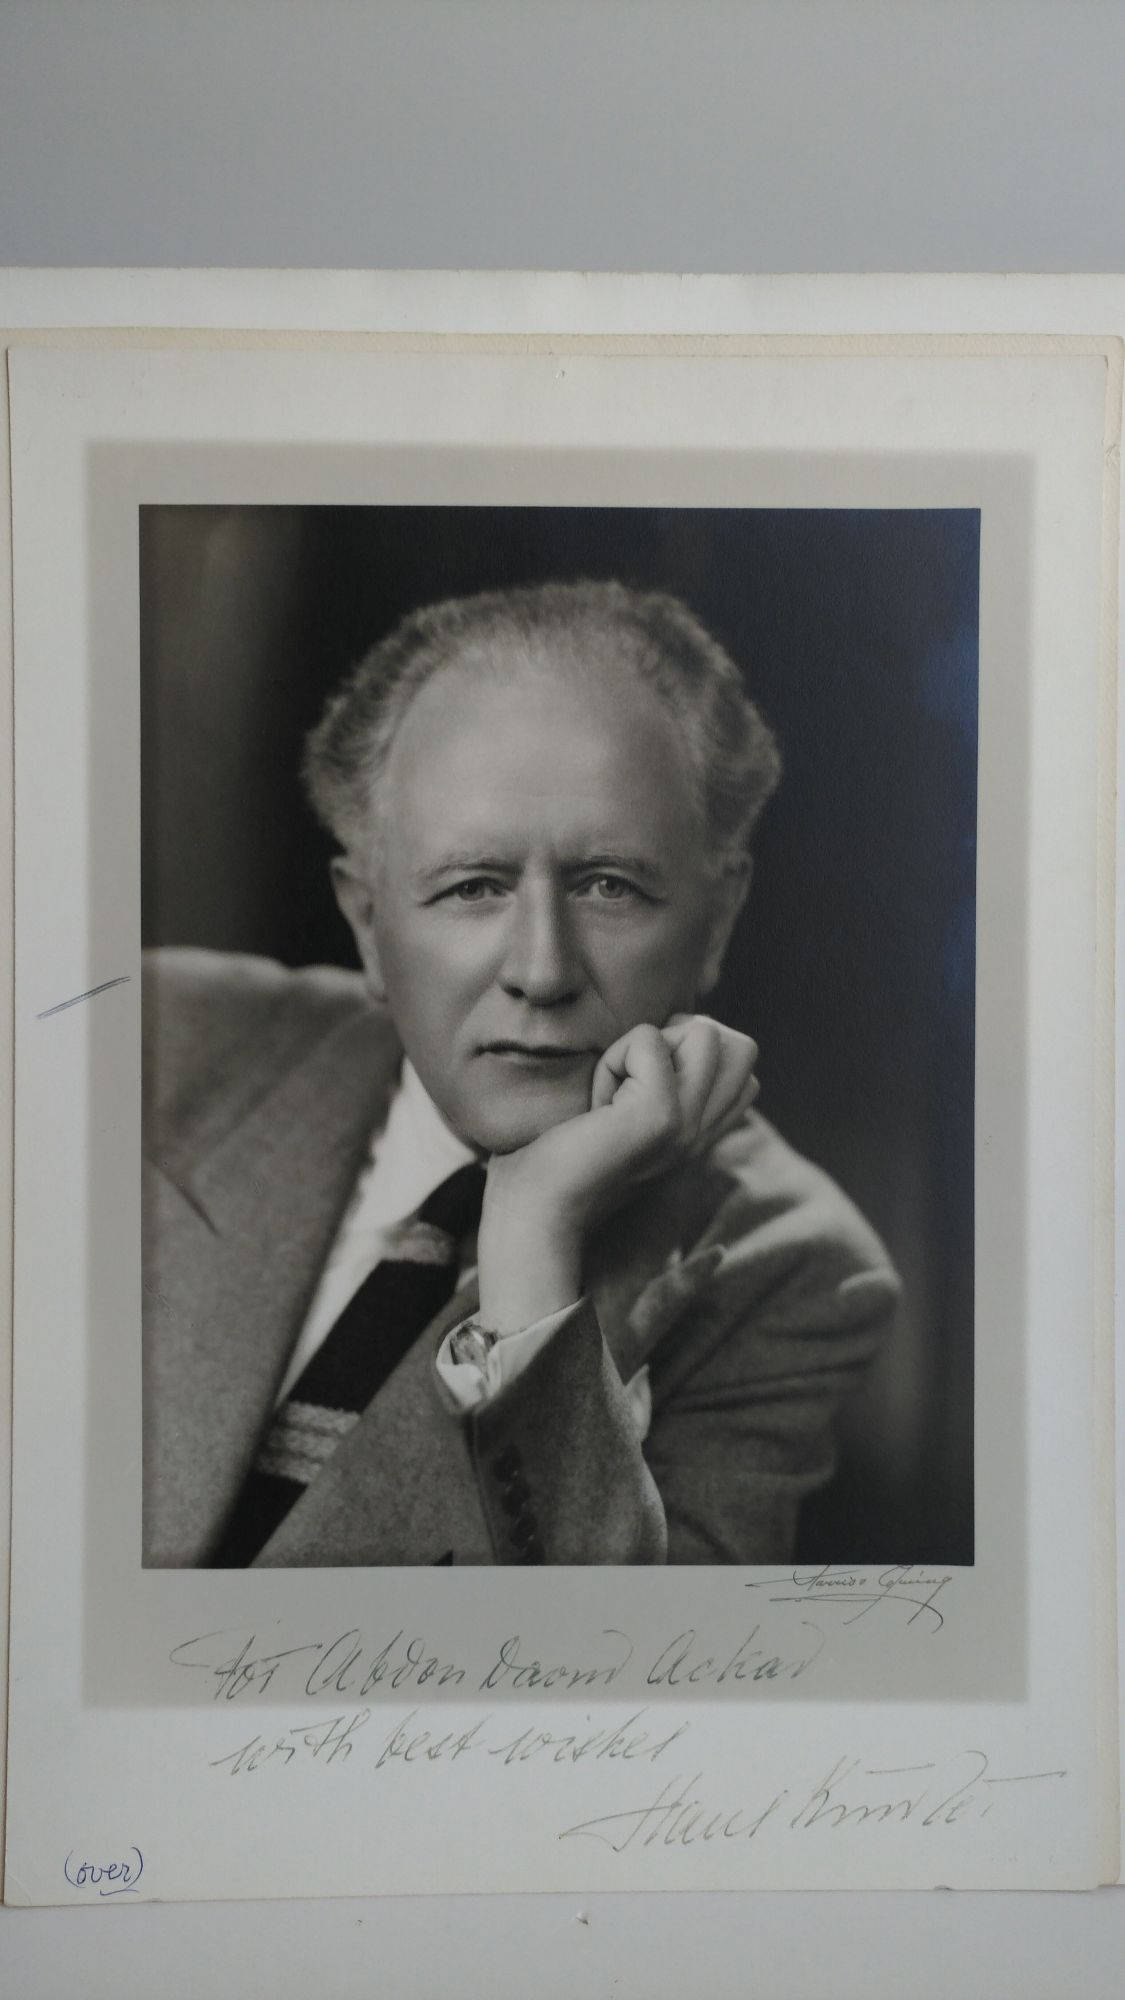 PHOTOGRAPH OF HANS KINDLER INSCRIBED TO PHOTOGRAPHER. Abdon Daoud Ackad.